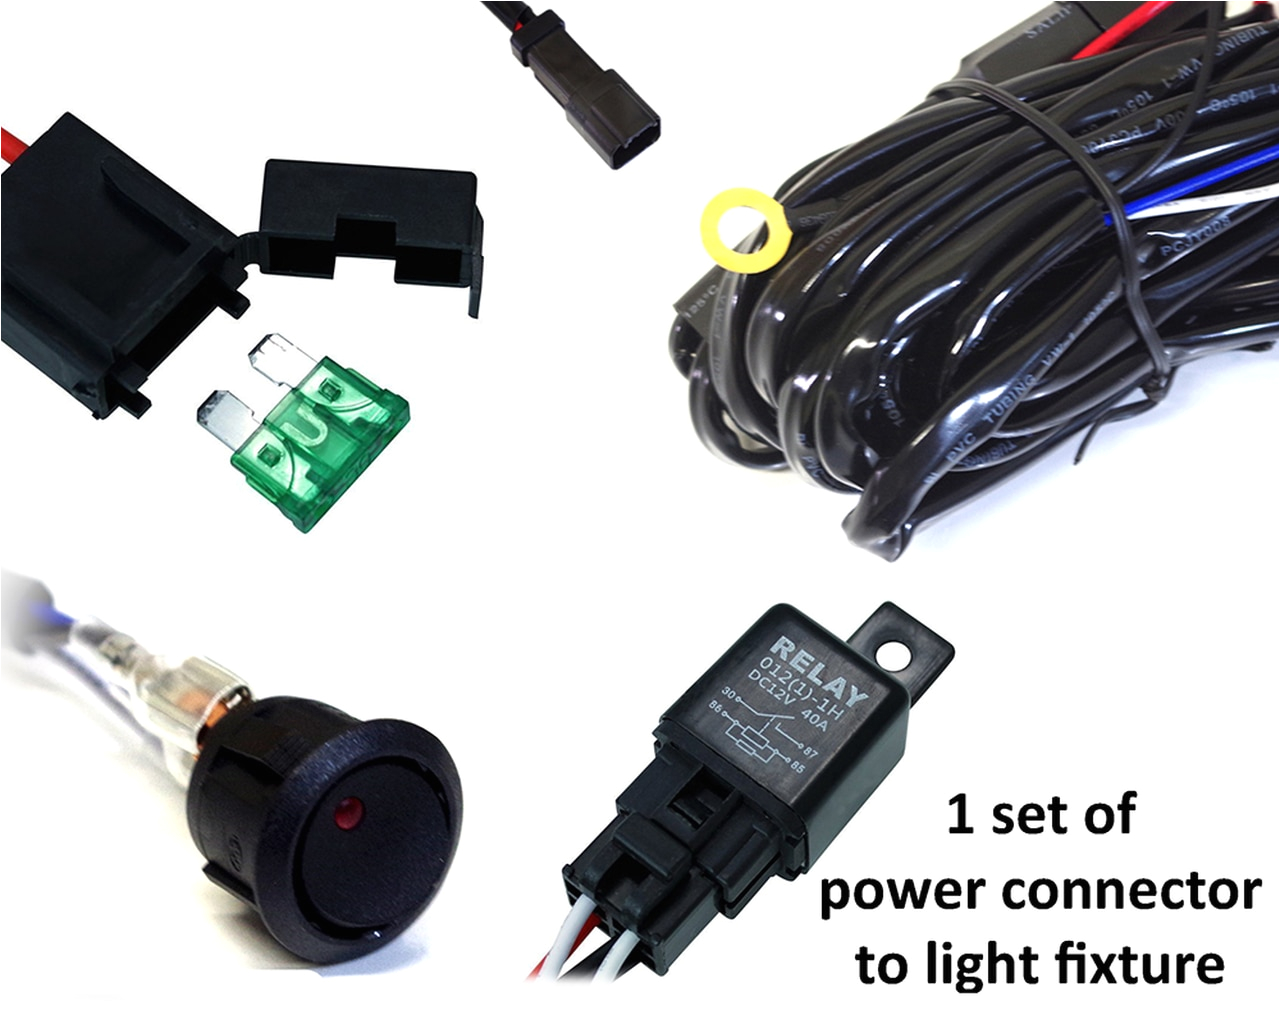 Led Equipped Light Bar Wiring Diagram Xprite Led Light Bar Wiring Harness with 1 Leg 40 Amp Relay On Off Switch